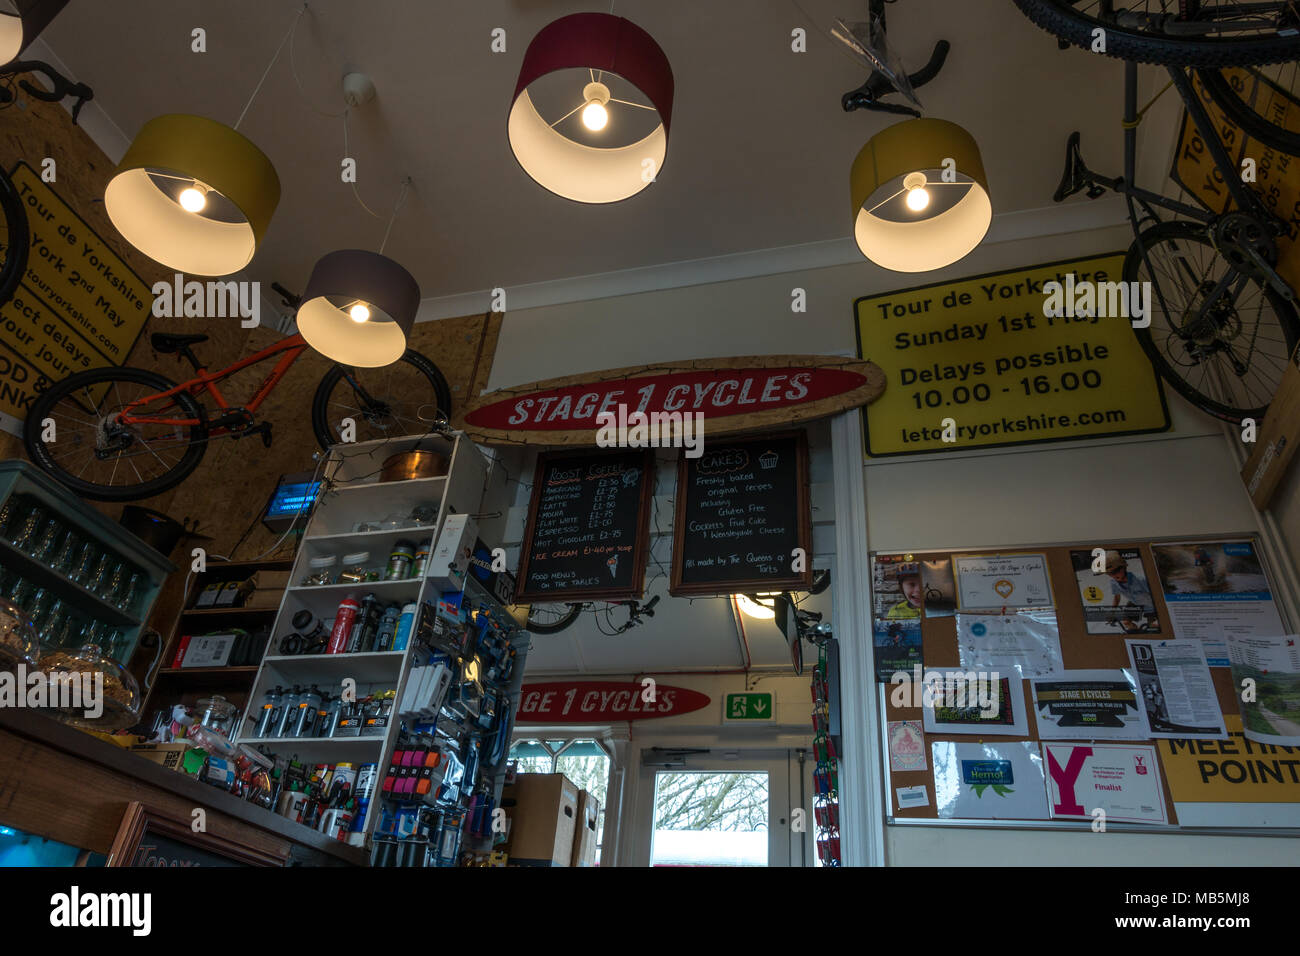 Inside the Stage 1 Cycles cafe, Firefox cafe in Hawes with Tour de Yorkshire memorabilia - Stock Image